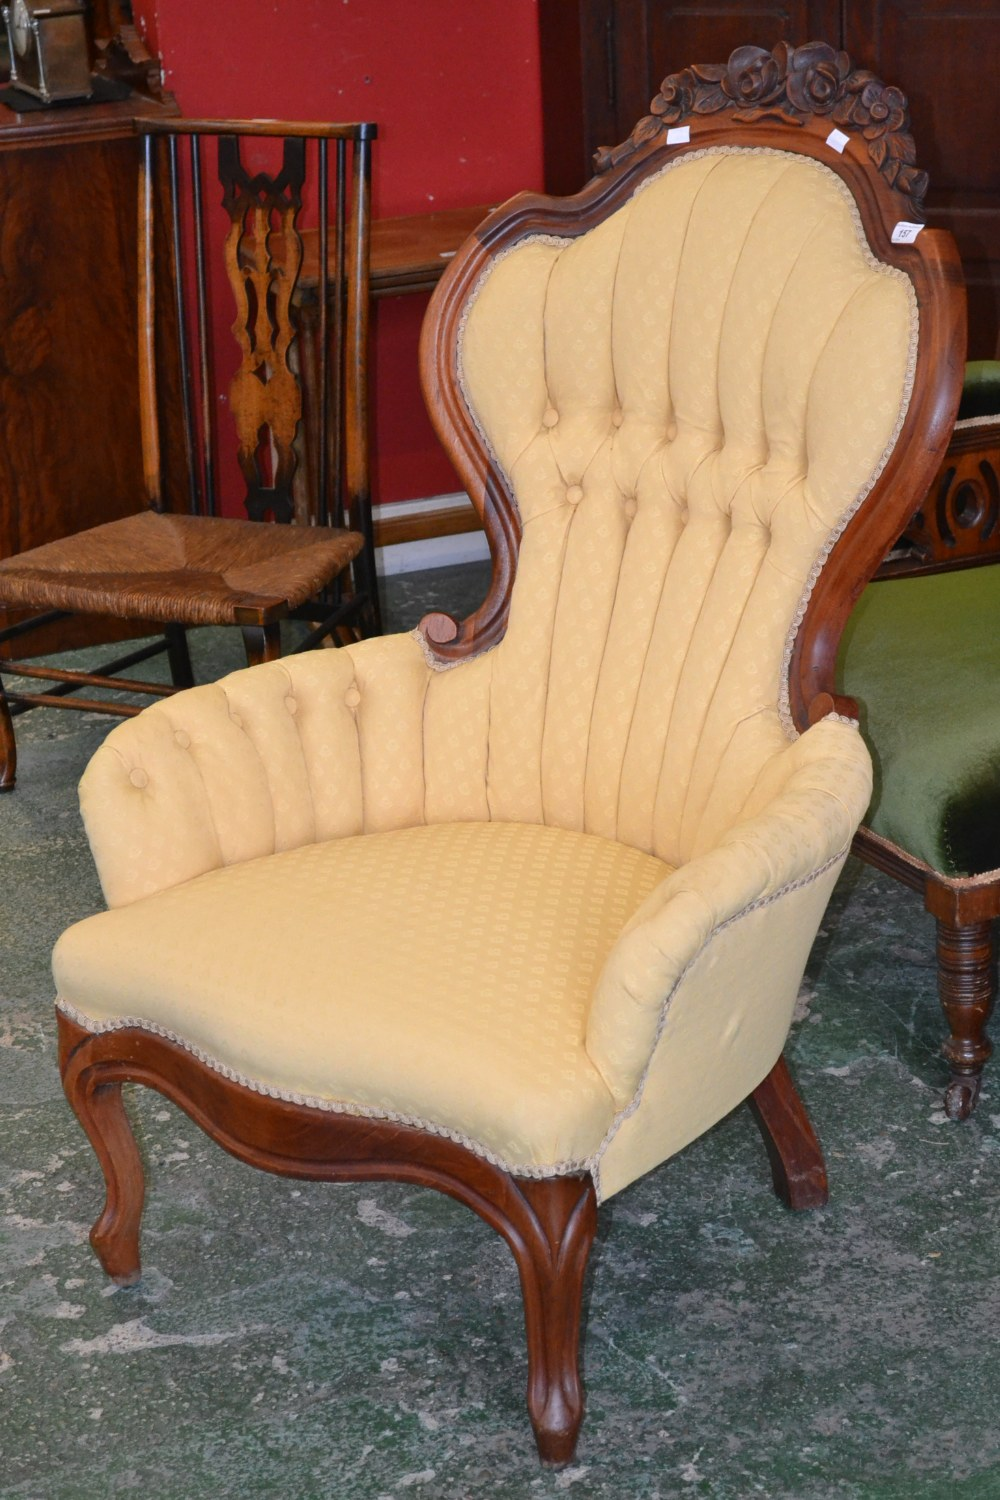 Lotto 157   A Carlton McLendon Furniture Reproduction Victorian Nursing  Chair, Spoon Back With Foliate